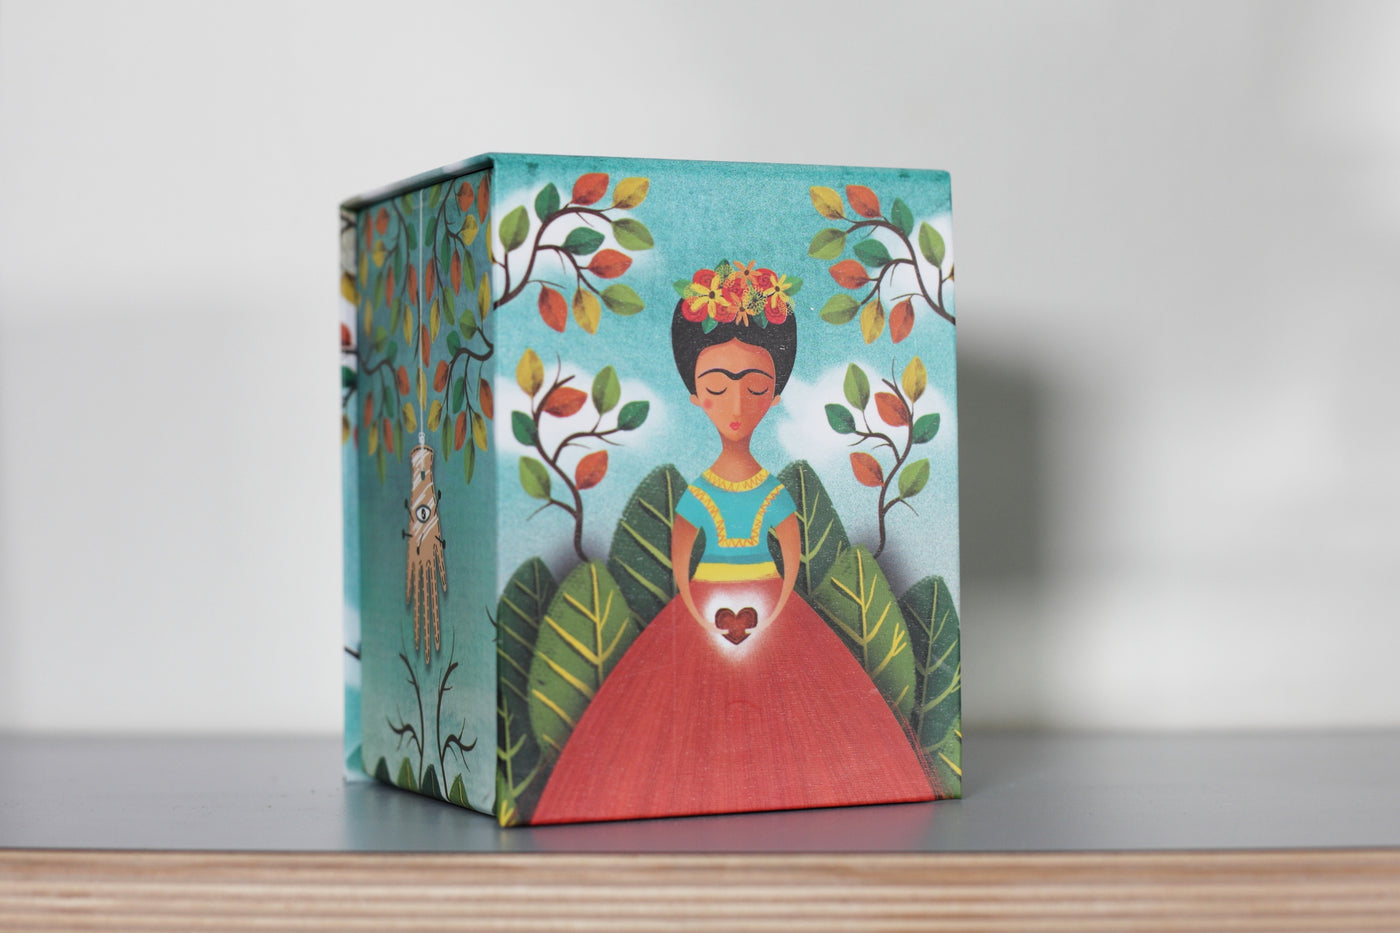 Frida Kahlo box. Made in Mexico. Home deco. rättvis handel